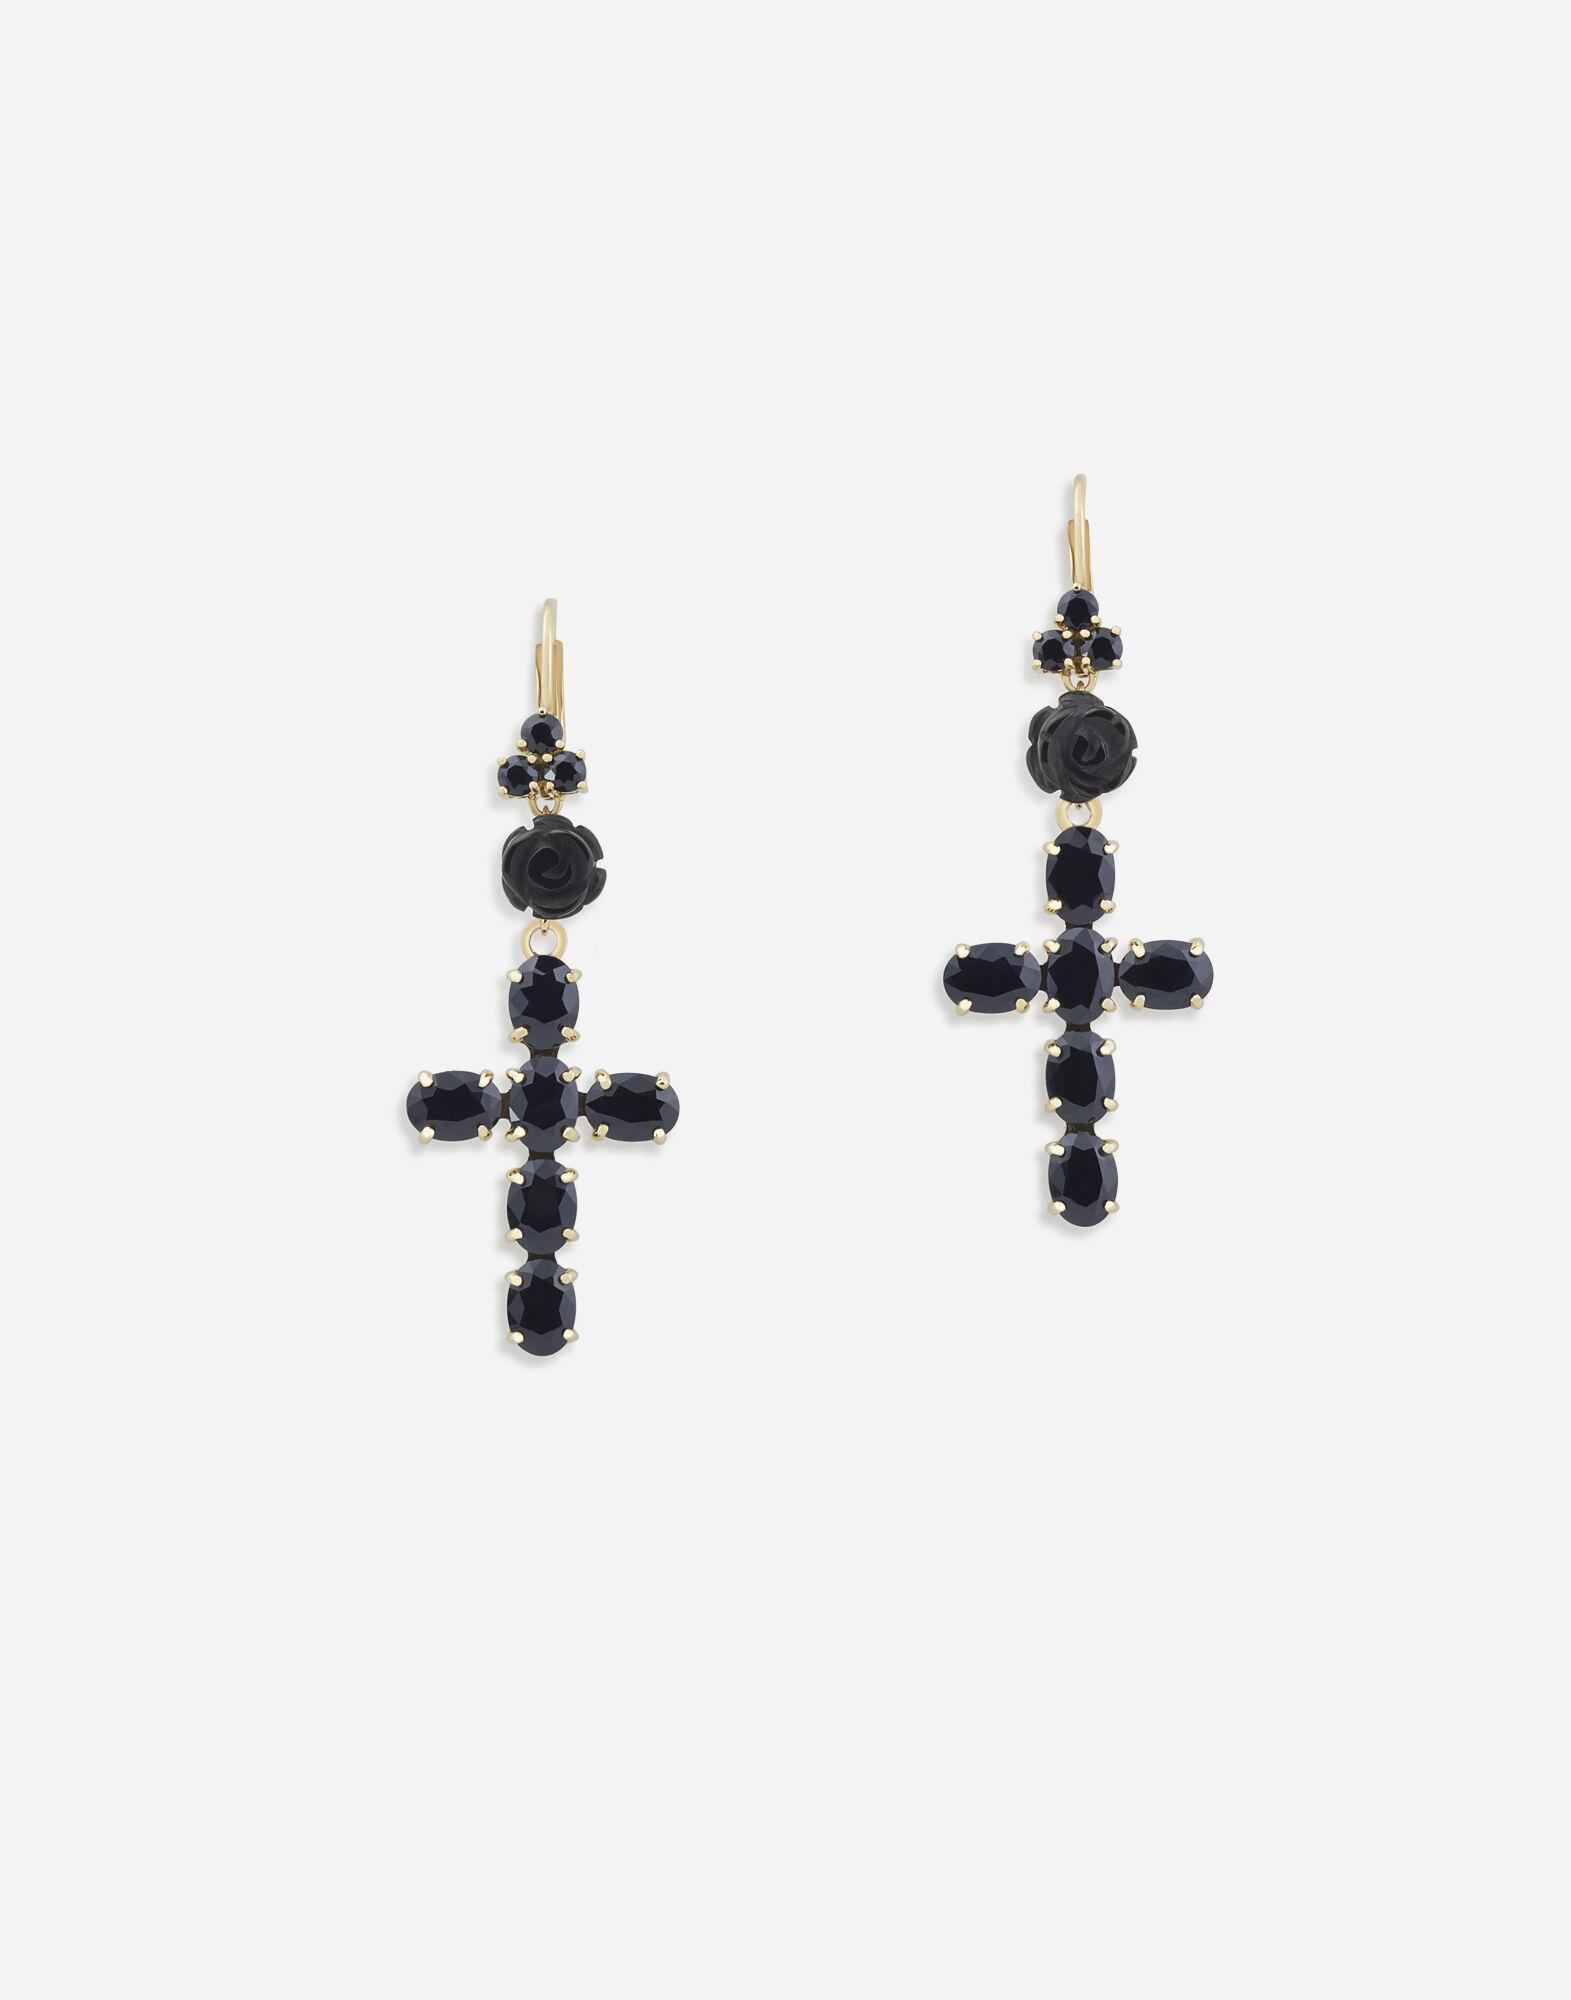 Devotion earrings in yellow gold with black sapphires